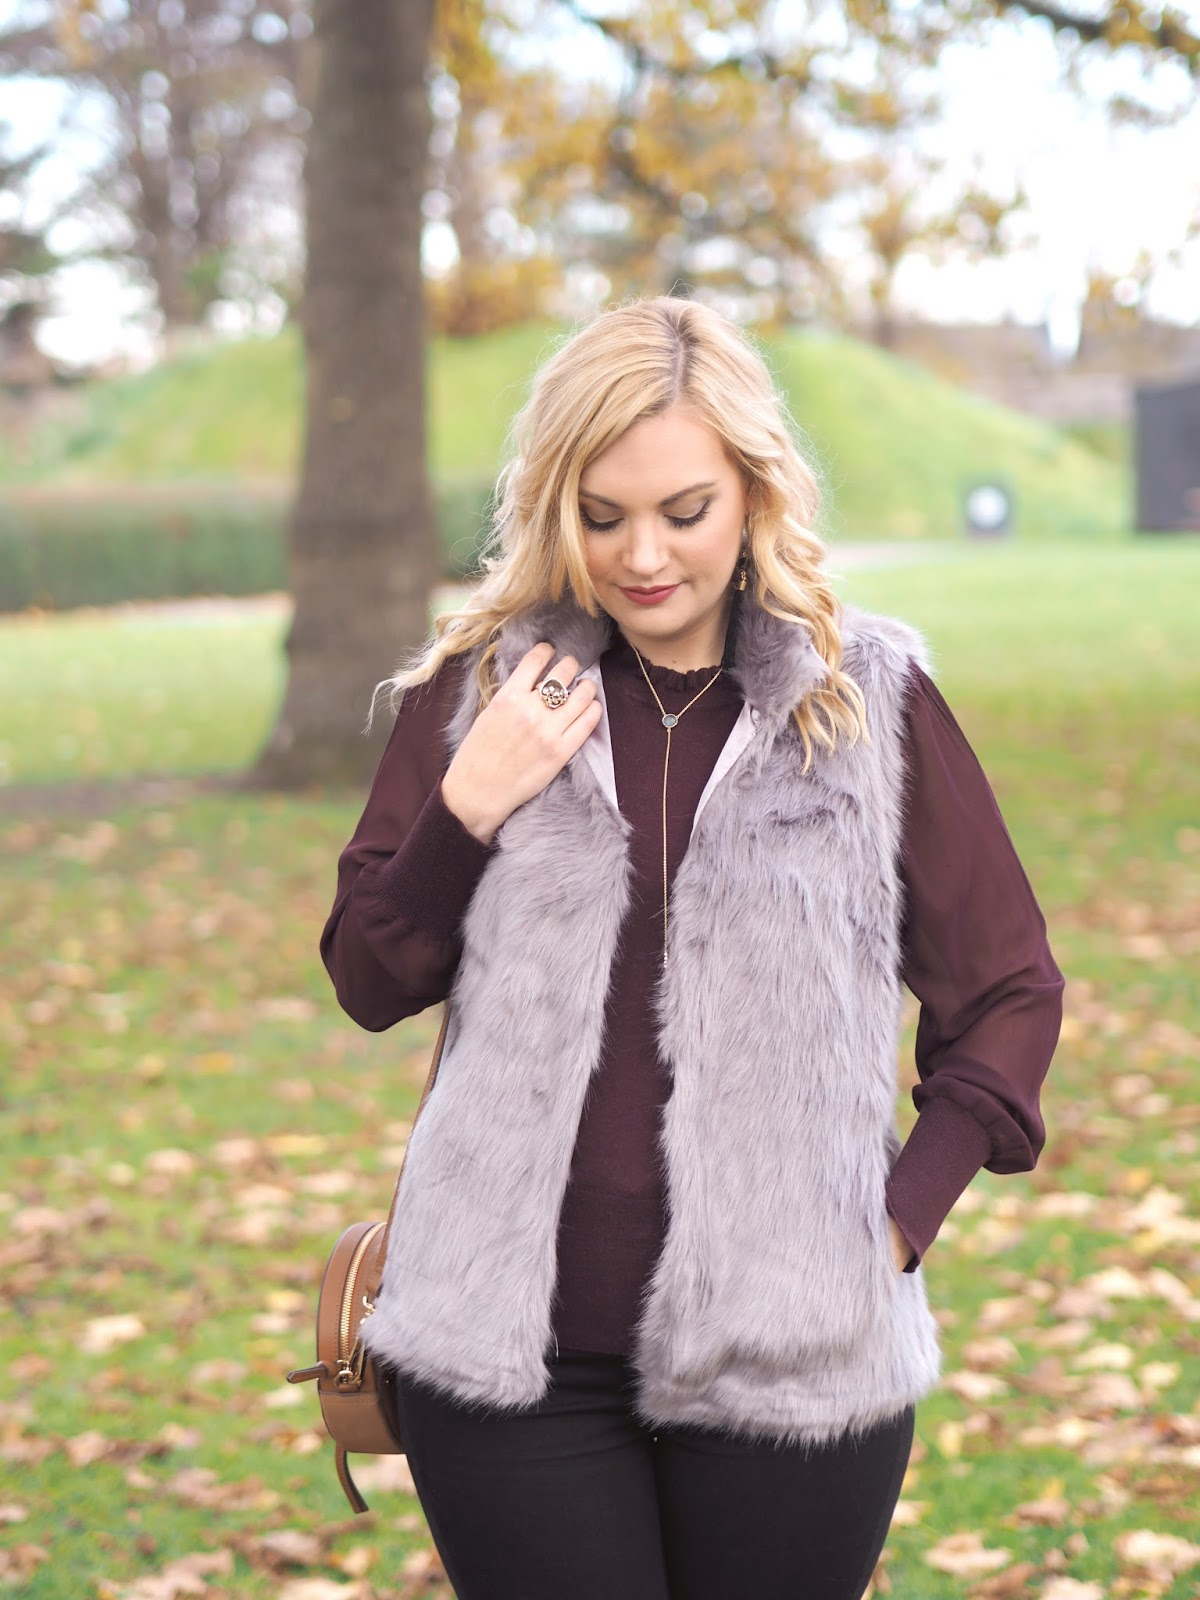 Coping with SAD aka the Winter Blues, How I Cope with SAD, Seasonal Affective Disorder, UK Blogger, Lifestyle Blogger, Health Blogger, Mental Health, Lets Talk Mental Health, Depression, Anxiety, Fashion Blogger, Style Blogger, Outfit